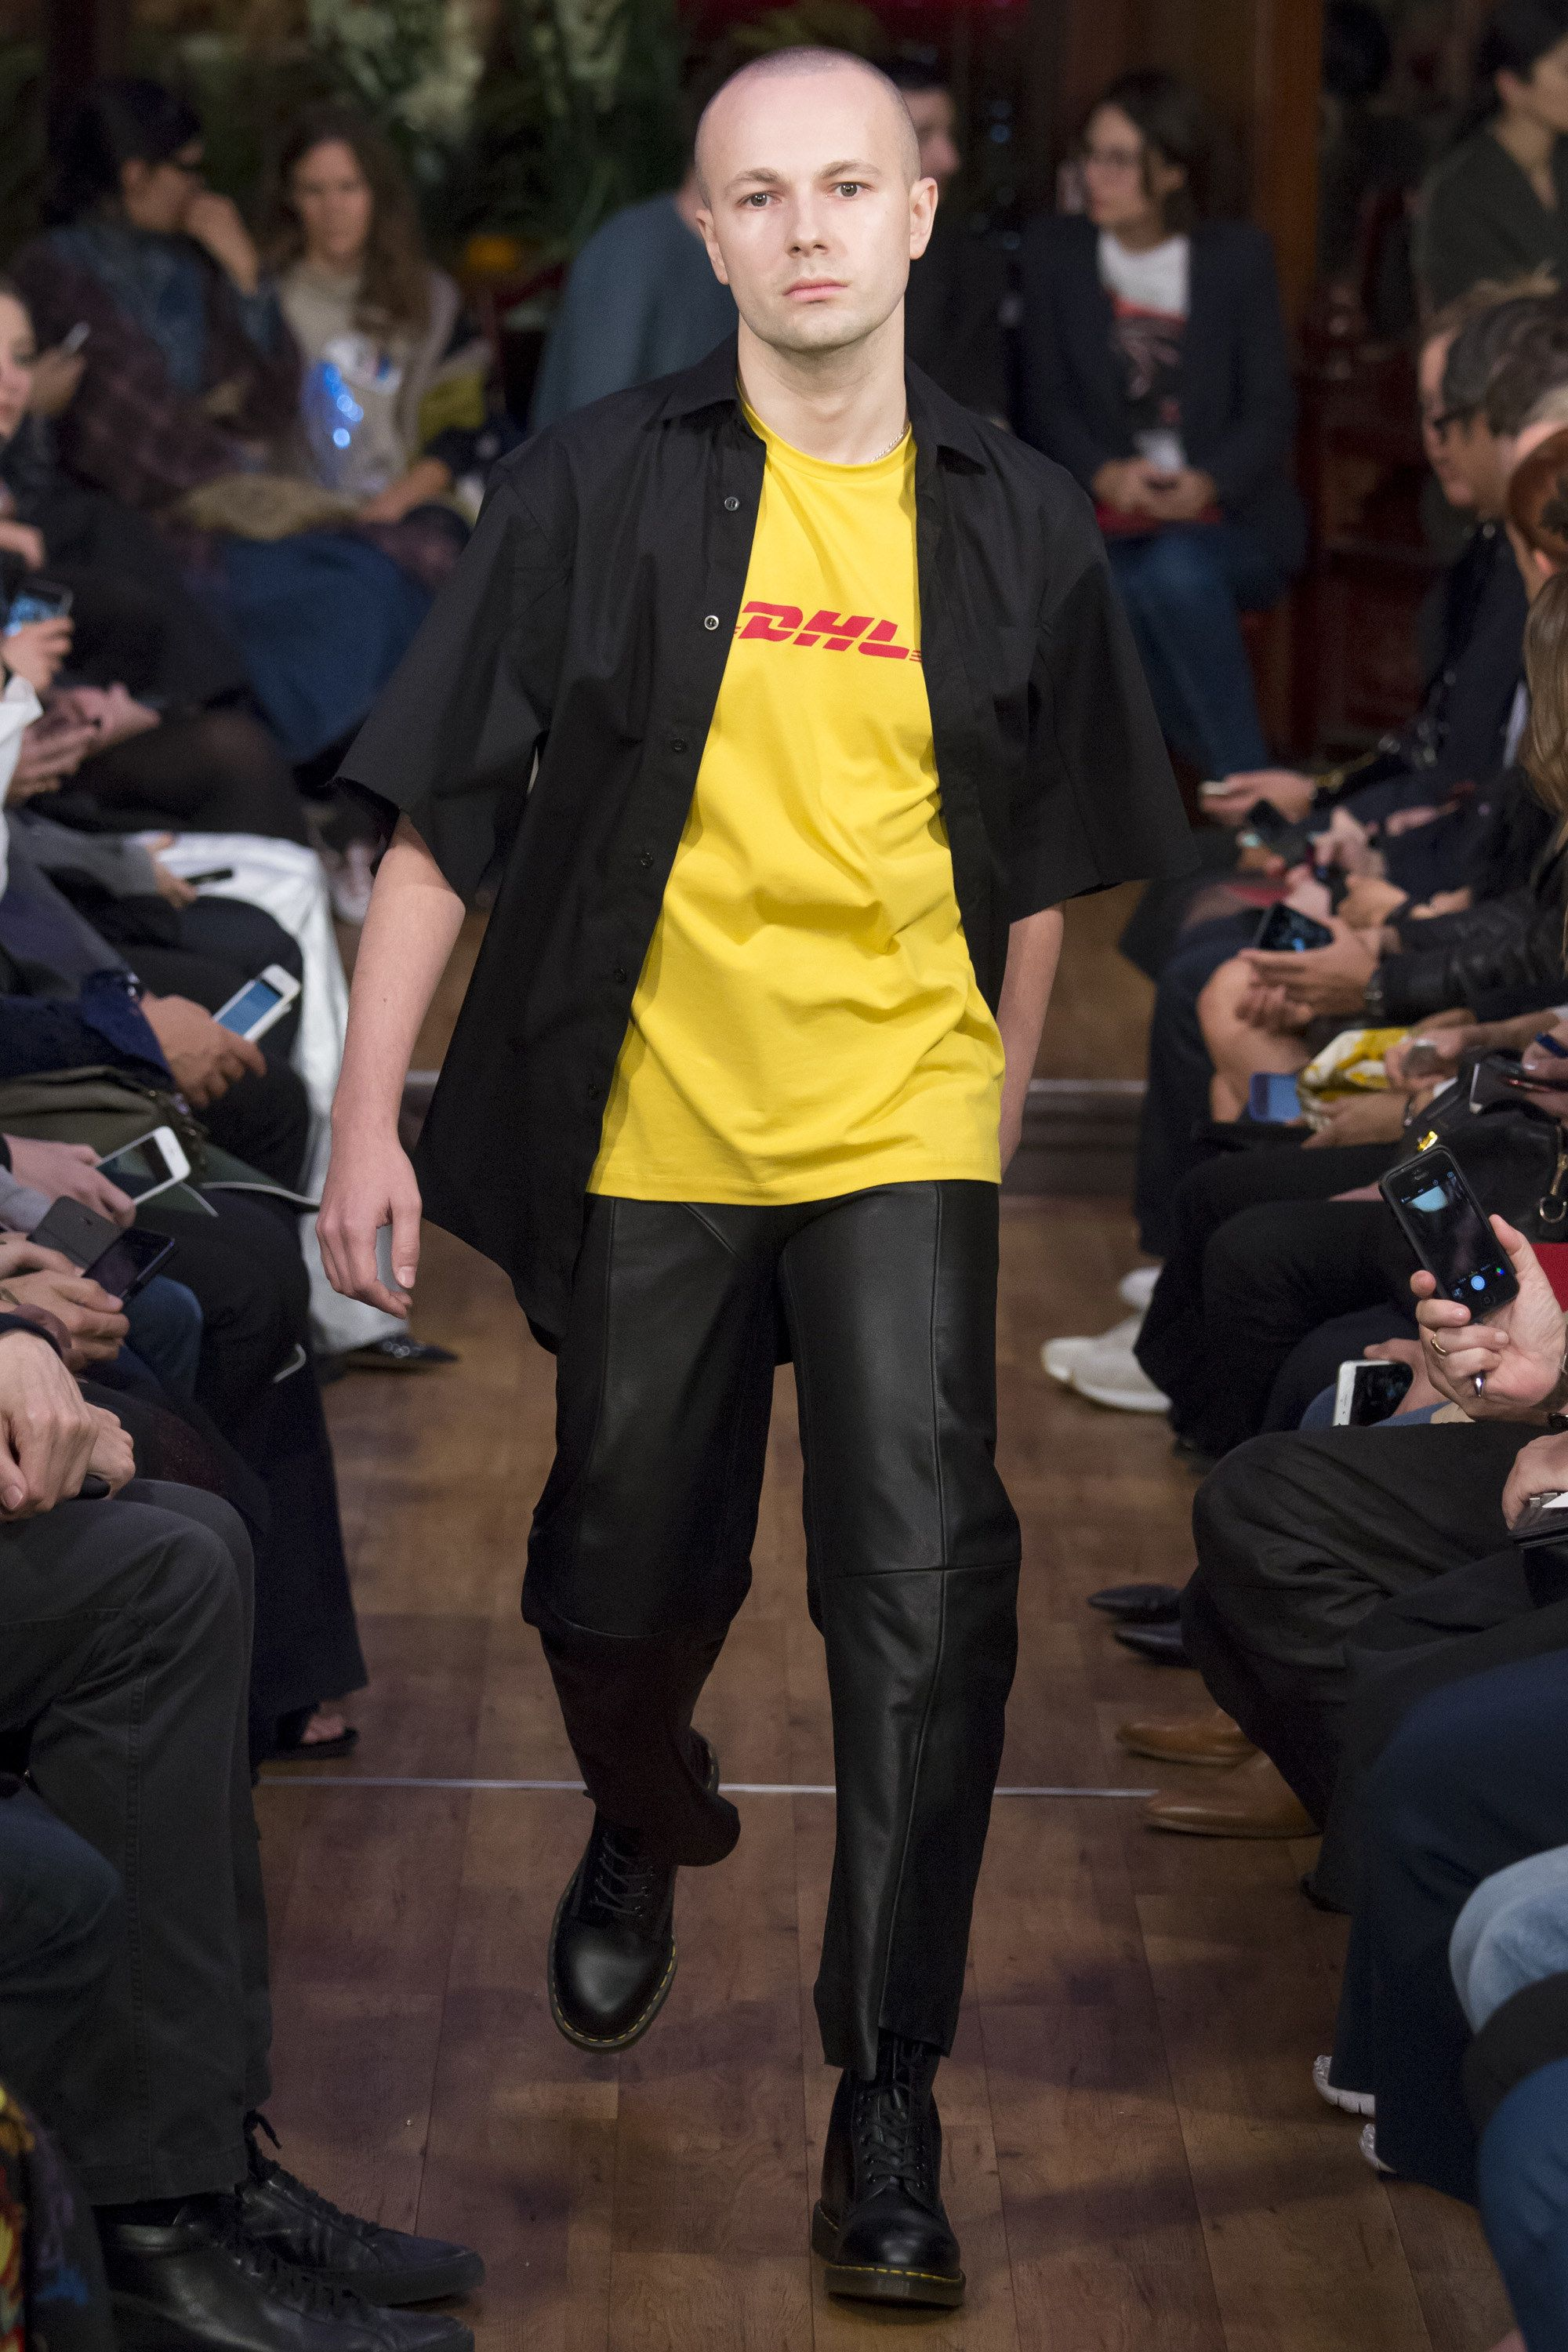 dc776e2c33ed16 The Russian designer and streetwear sensation Gosha Rubchinskiy opened the  Vetements SS16 show in Paris. Wearing a yellow DHL T-shirt and a scrappy  leather ...